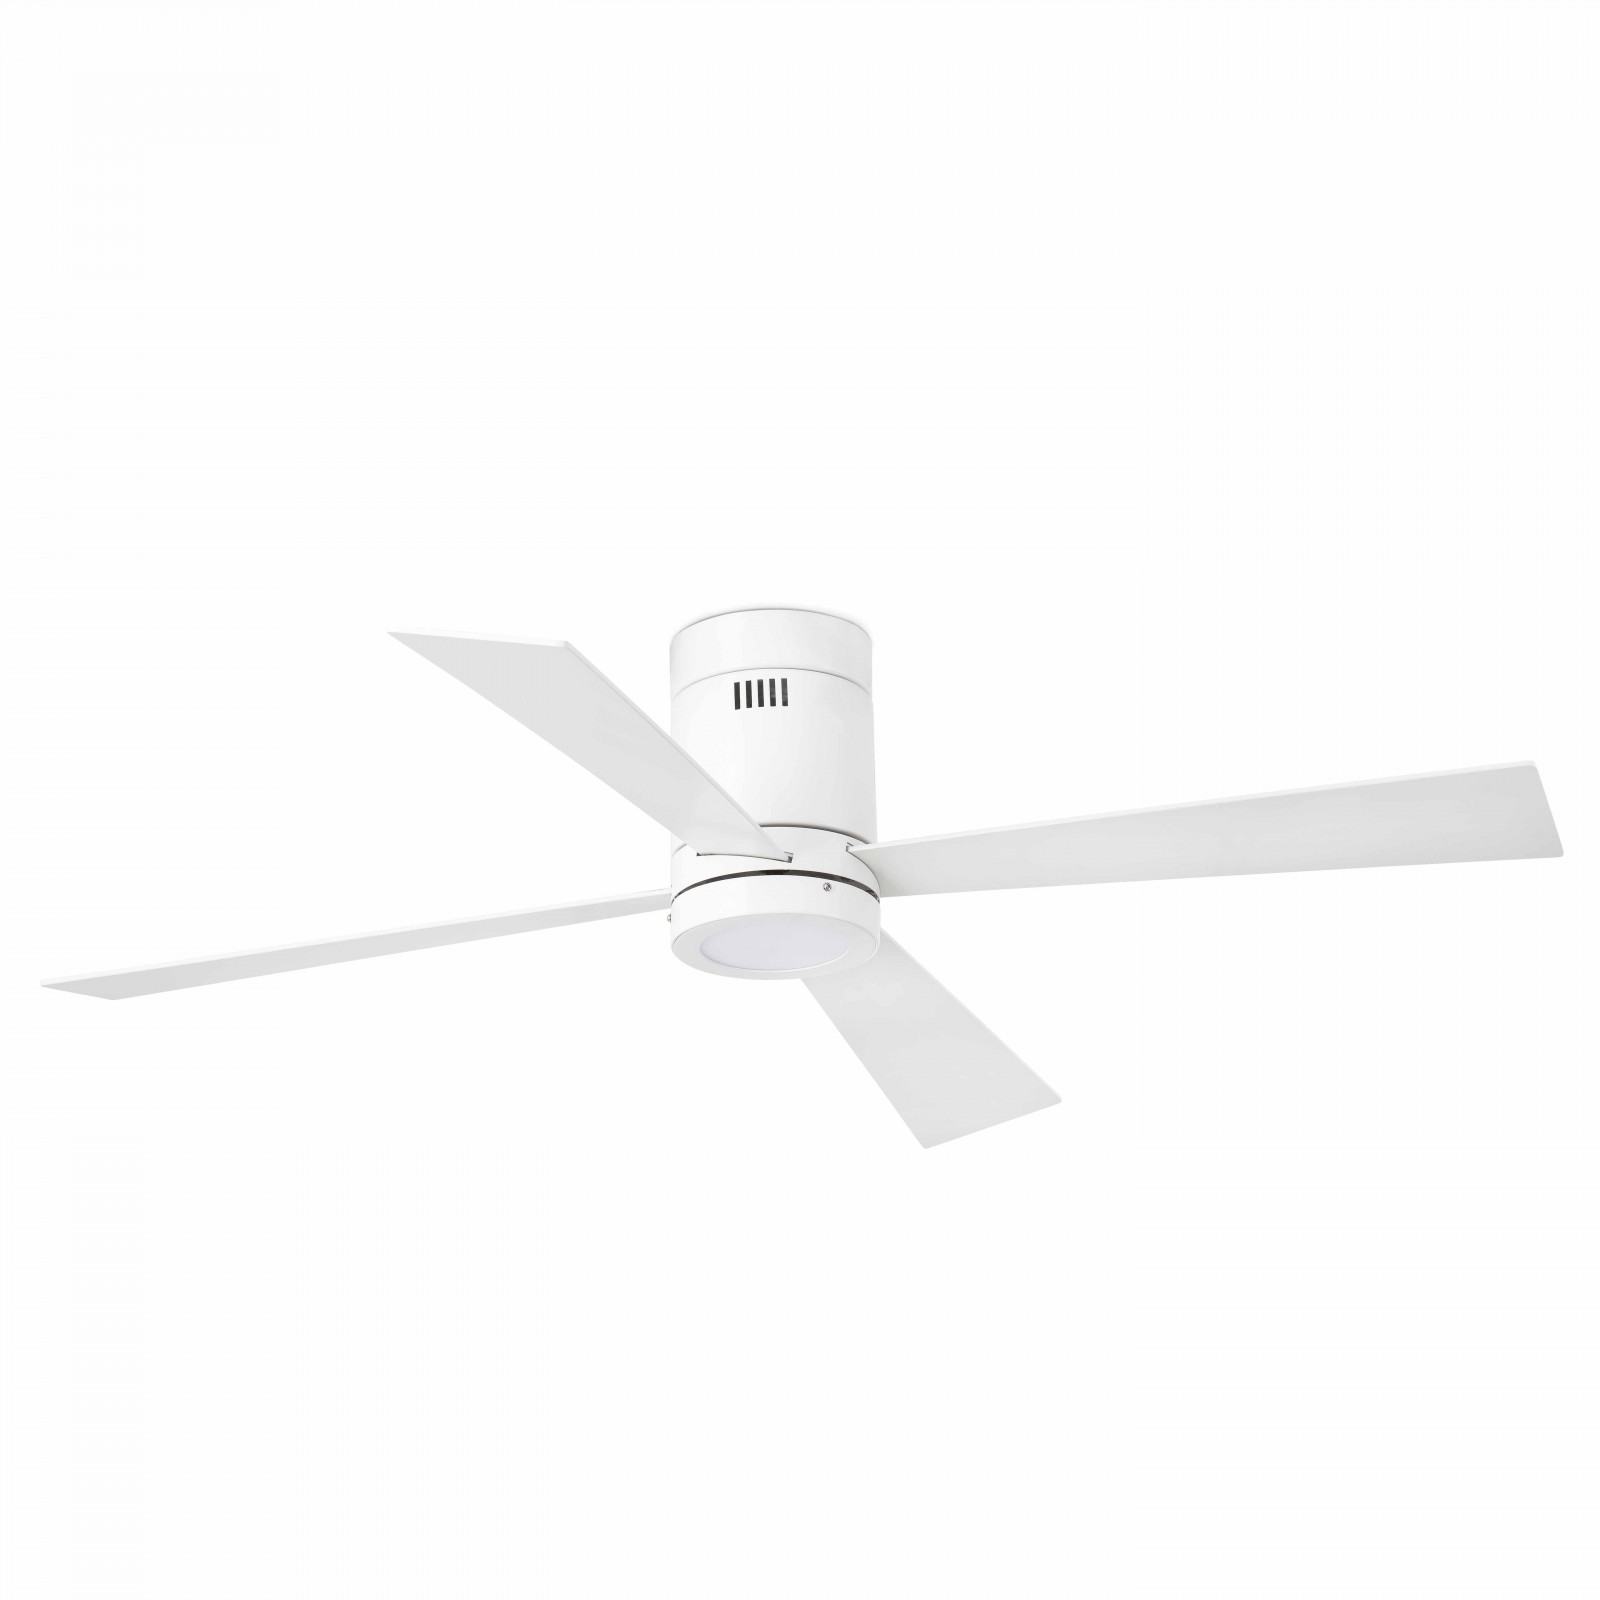 ceiling for en control remote fuer fernbedienung controls ceilings fans von deckenventilatoren accessories and domestic faro fan a